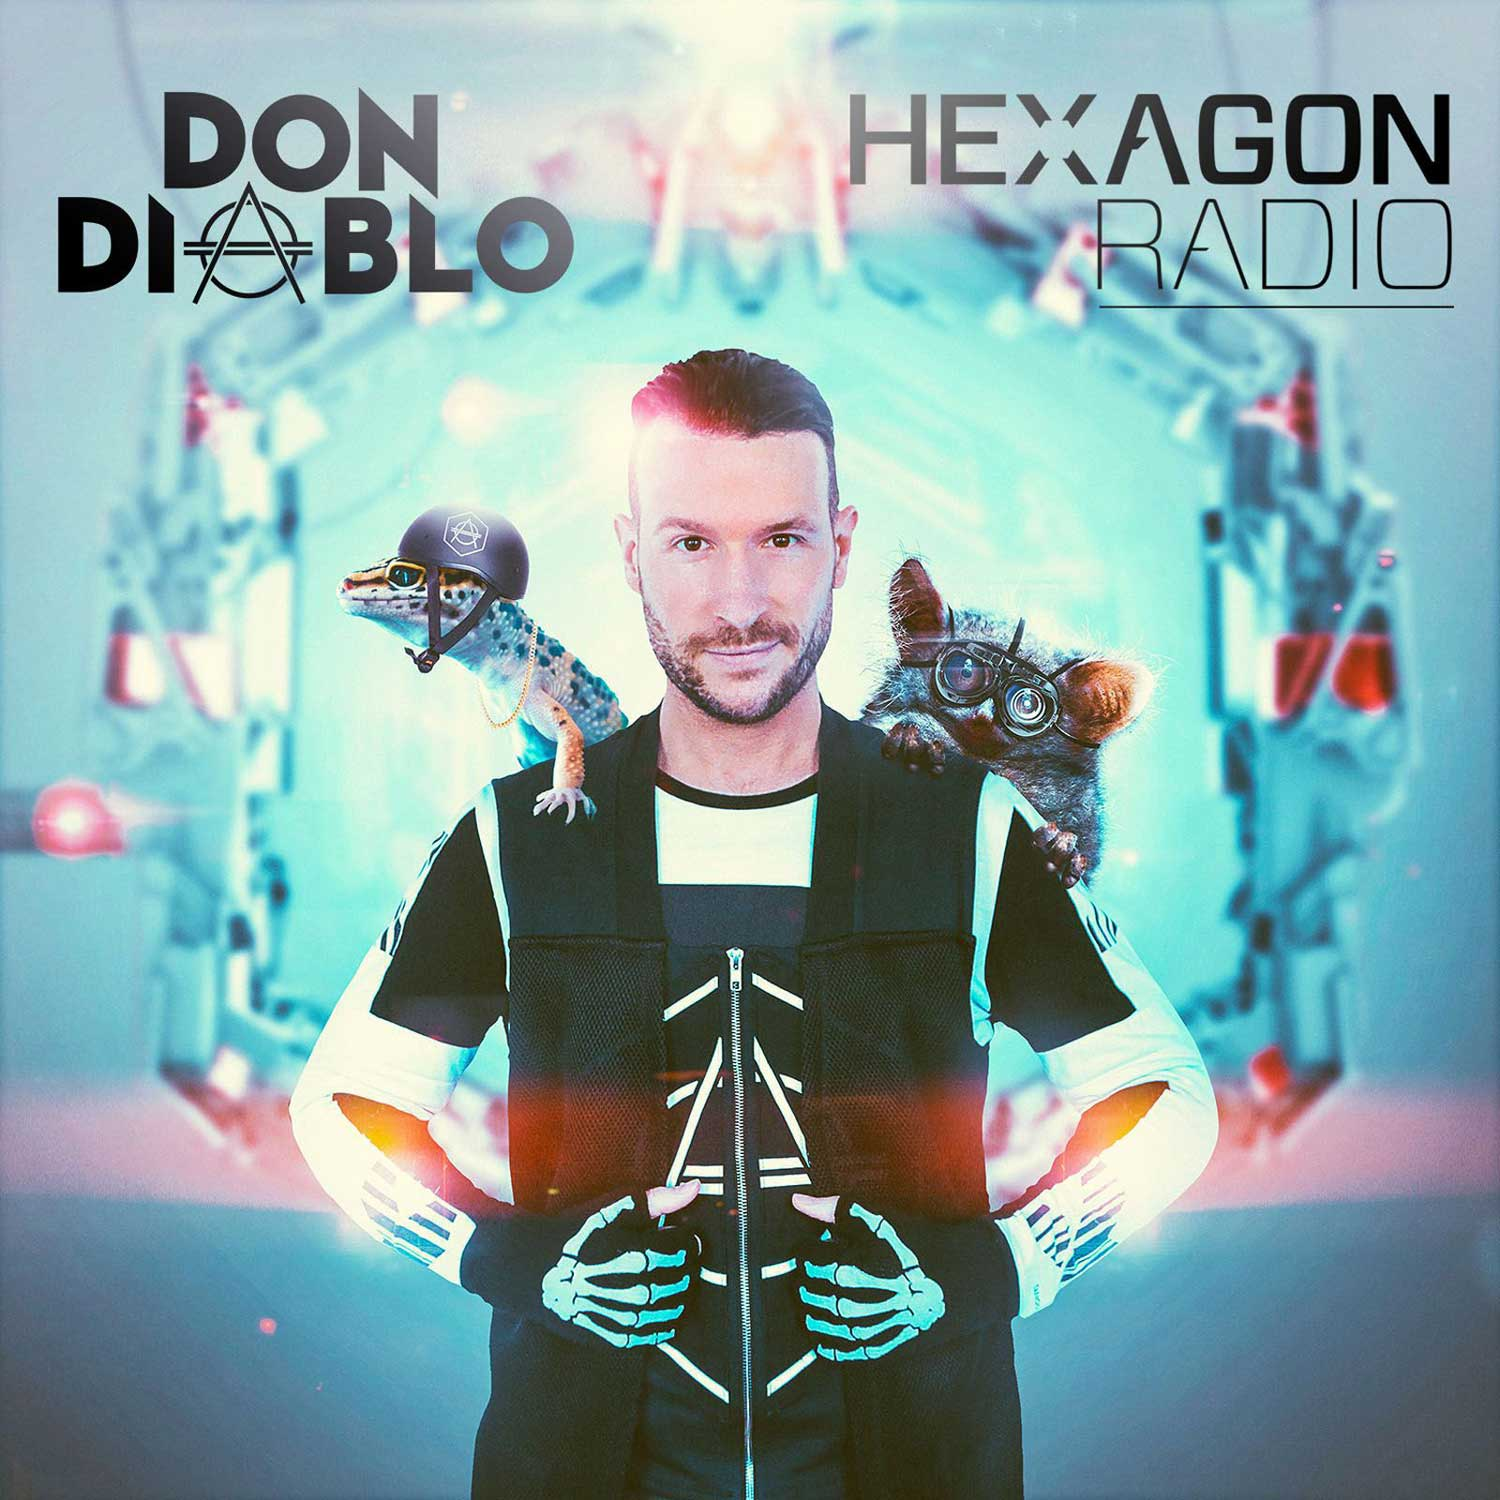 Don Diablo - Hexagon Radio 155 - 23-Jan-2018